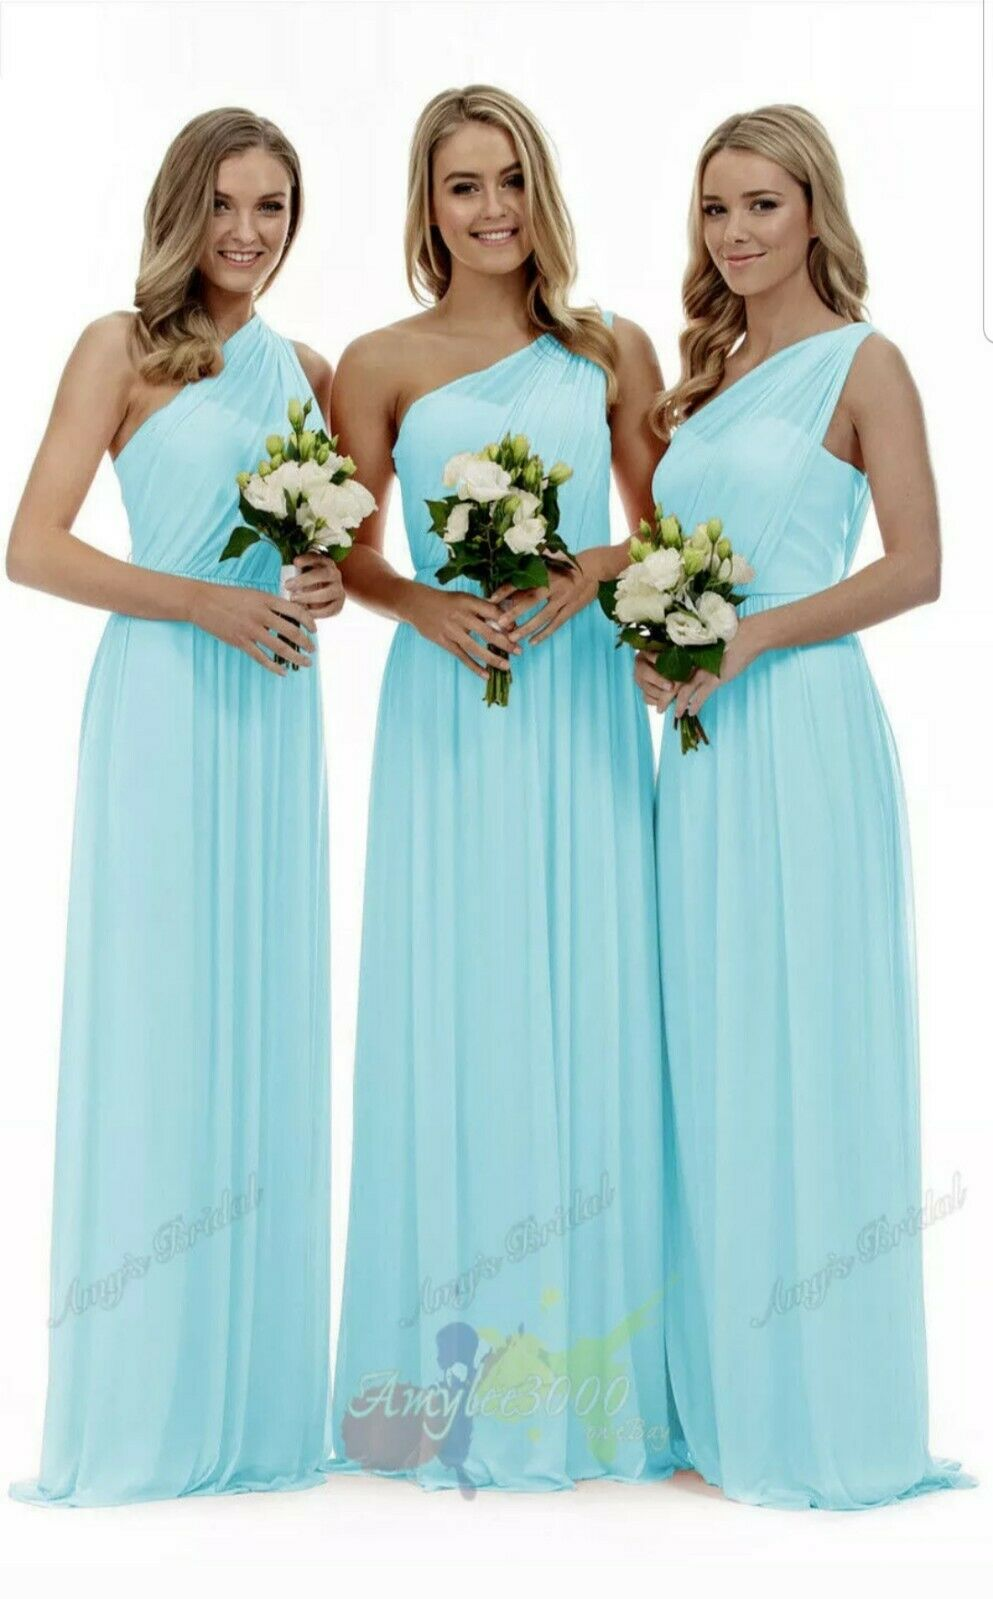 2 Chiffon One-shoulder Long Evening Formal Party Ball Gown Prom Bridesmaid Dress